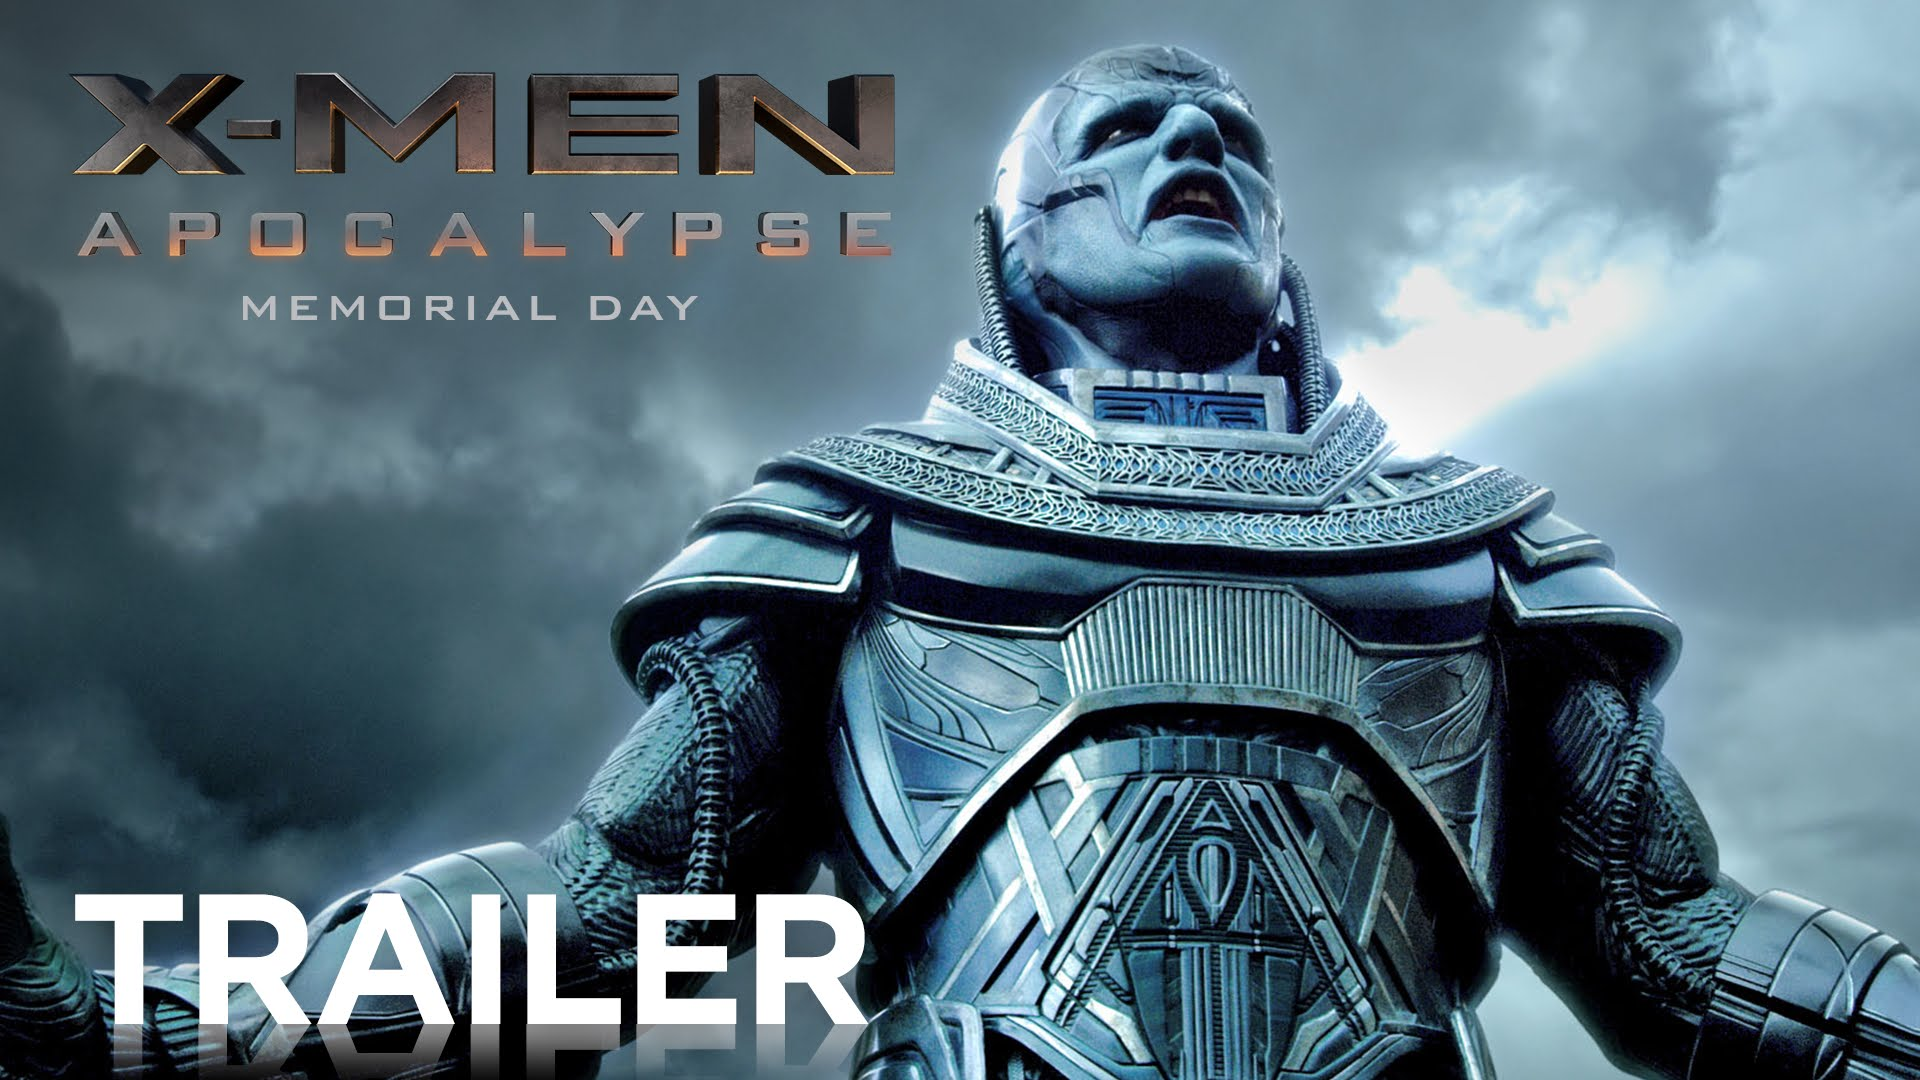 X-men apocalypse movie trailer poster